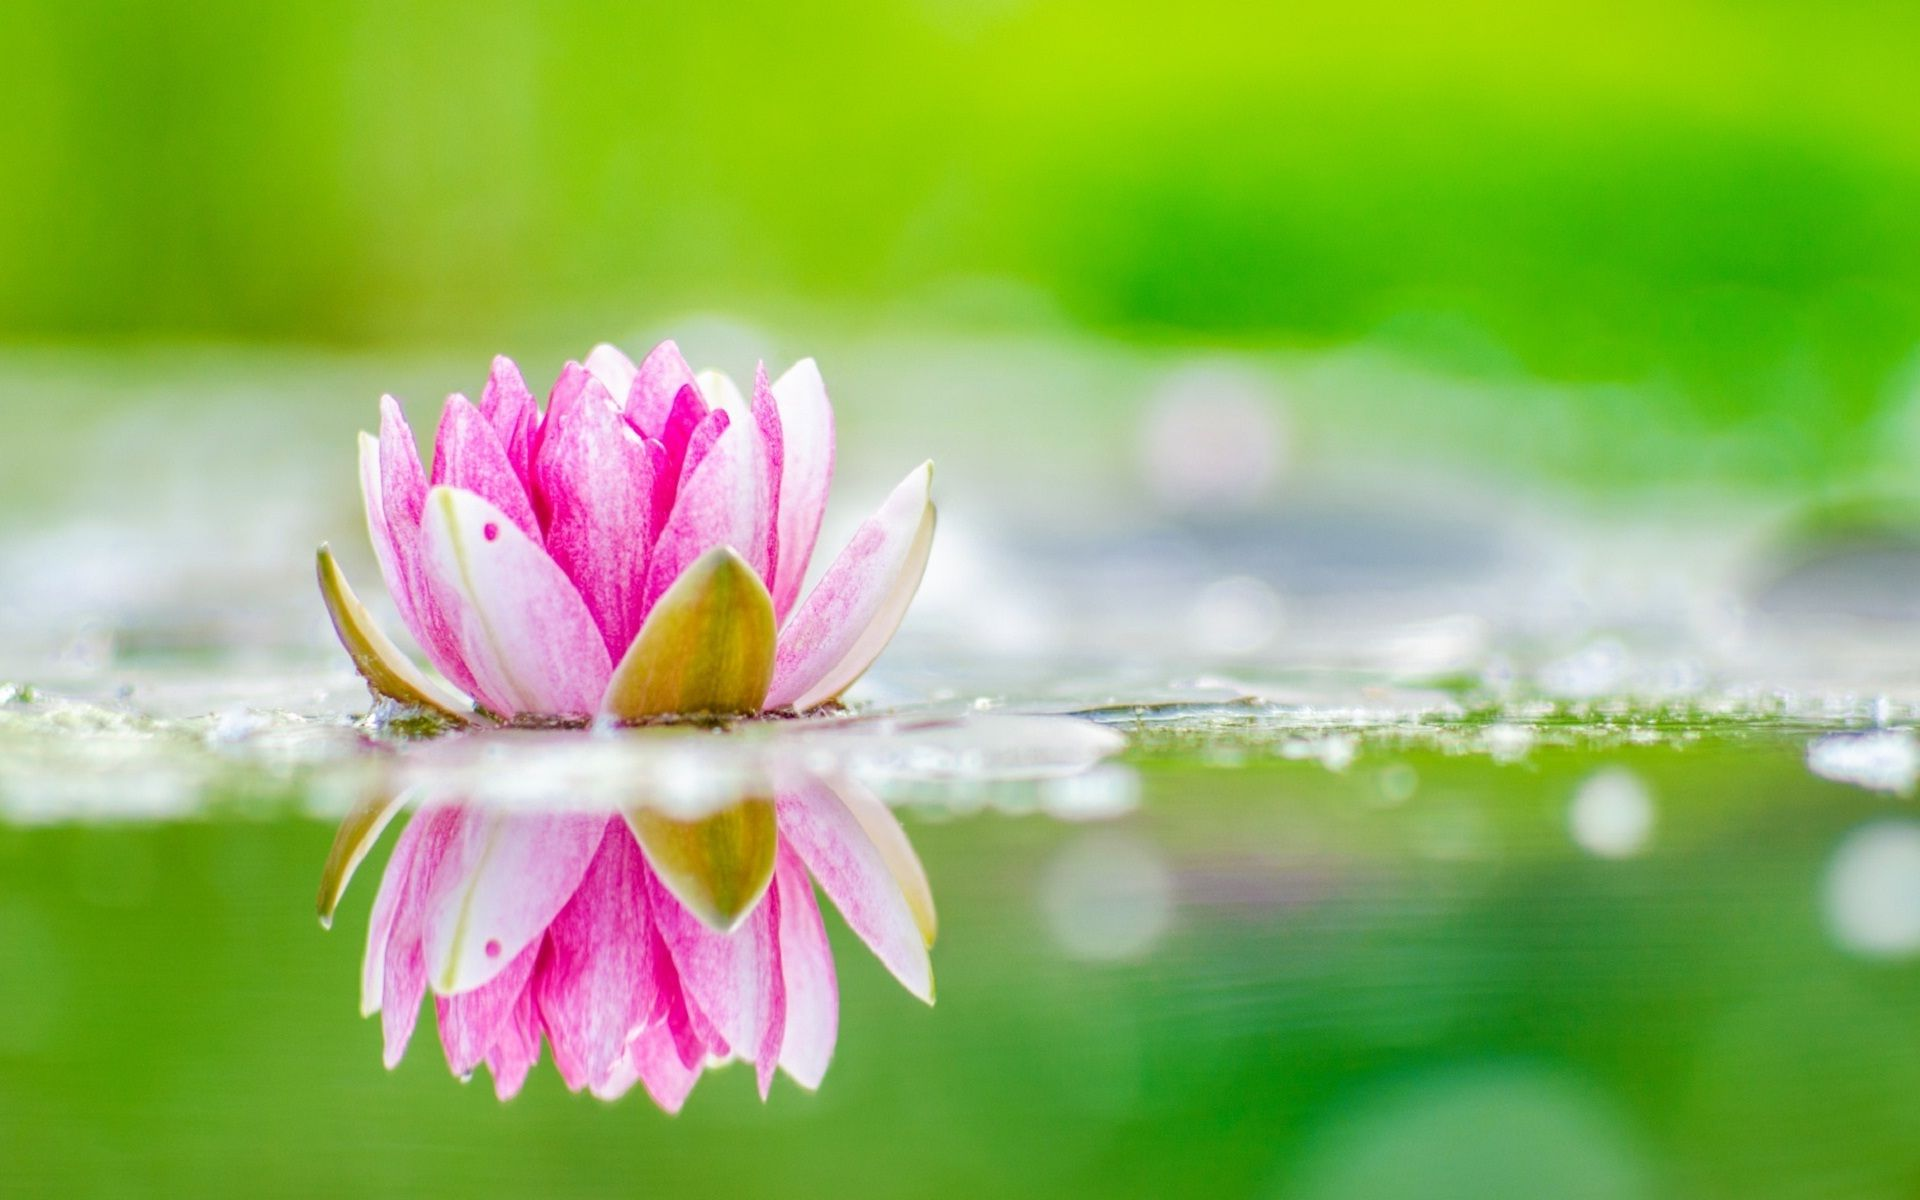 Pink Lotus Flowers With Beautiful Nature Wallpapers - Water Lily Wallpaper Hd , HD Wallpaper & Backgrounds